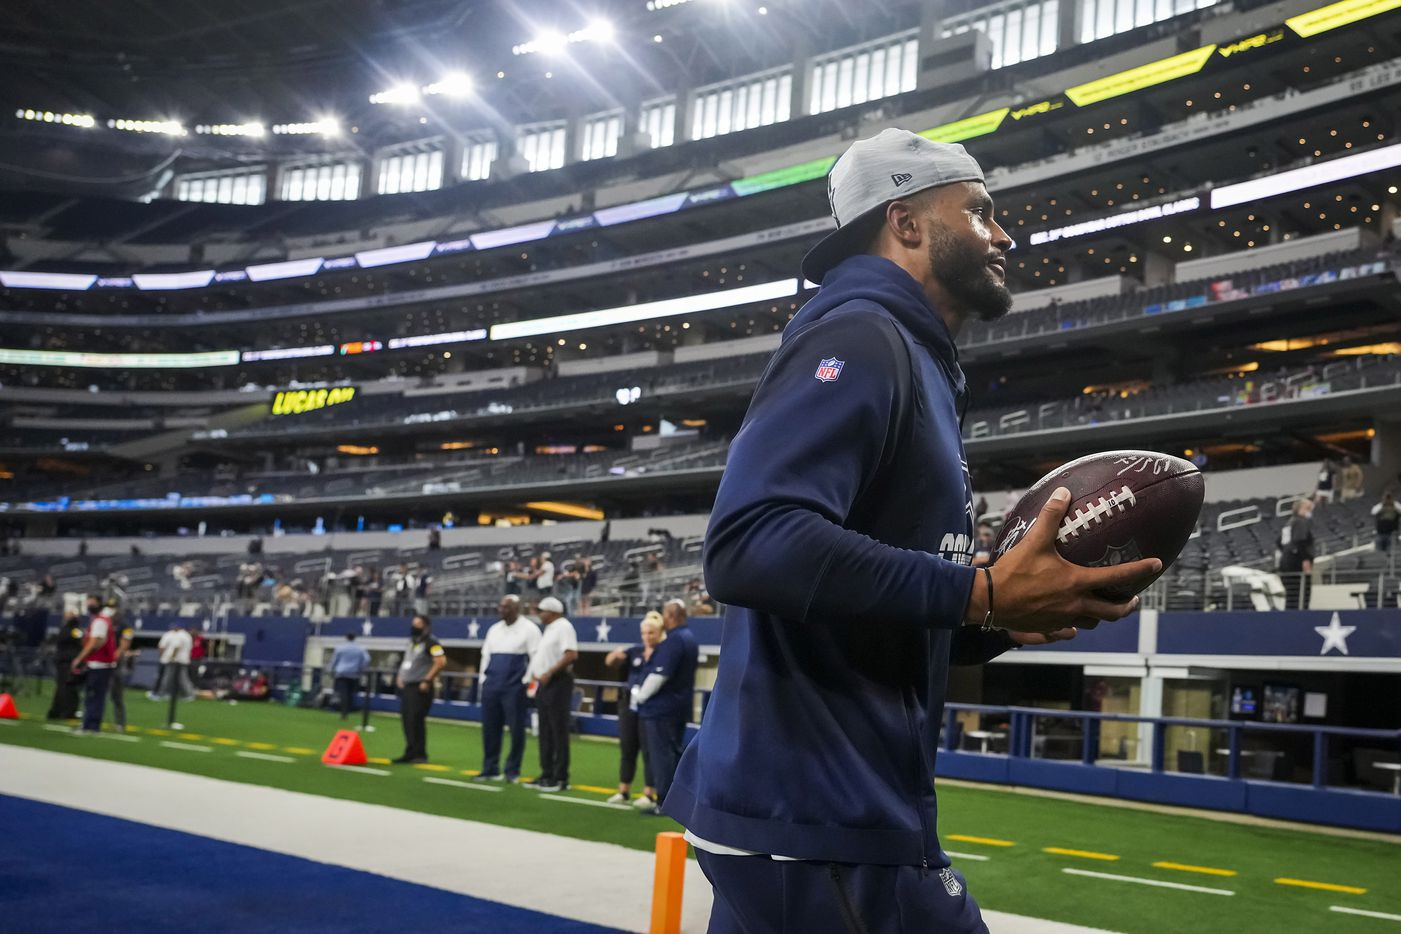 Dallas Cowboys quarterback Dak Prescott prepares to toss a ball to a fan as the team warms up before a preseason NFL football game against the Jacksonville Jaguars at AT&T Stadium on Sunday, Aug. 29, 2021, in Arlington. (Smiley N. Pool/The Dallas Morning News)